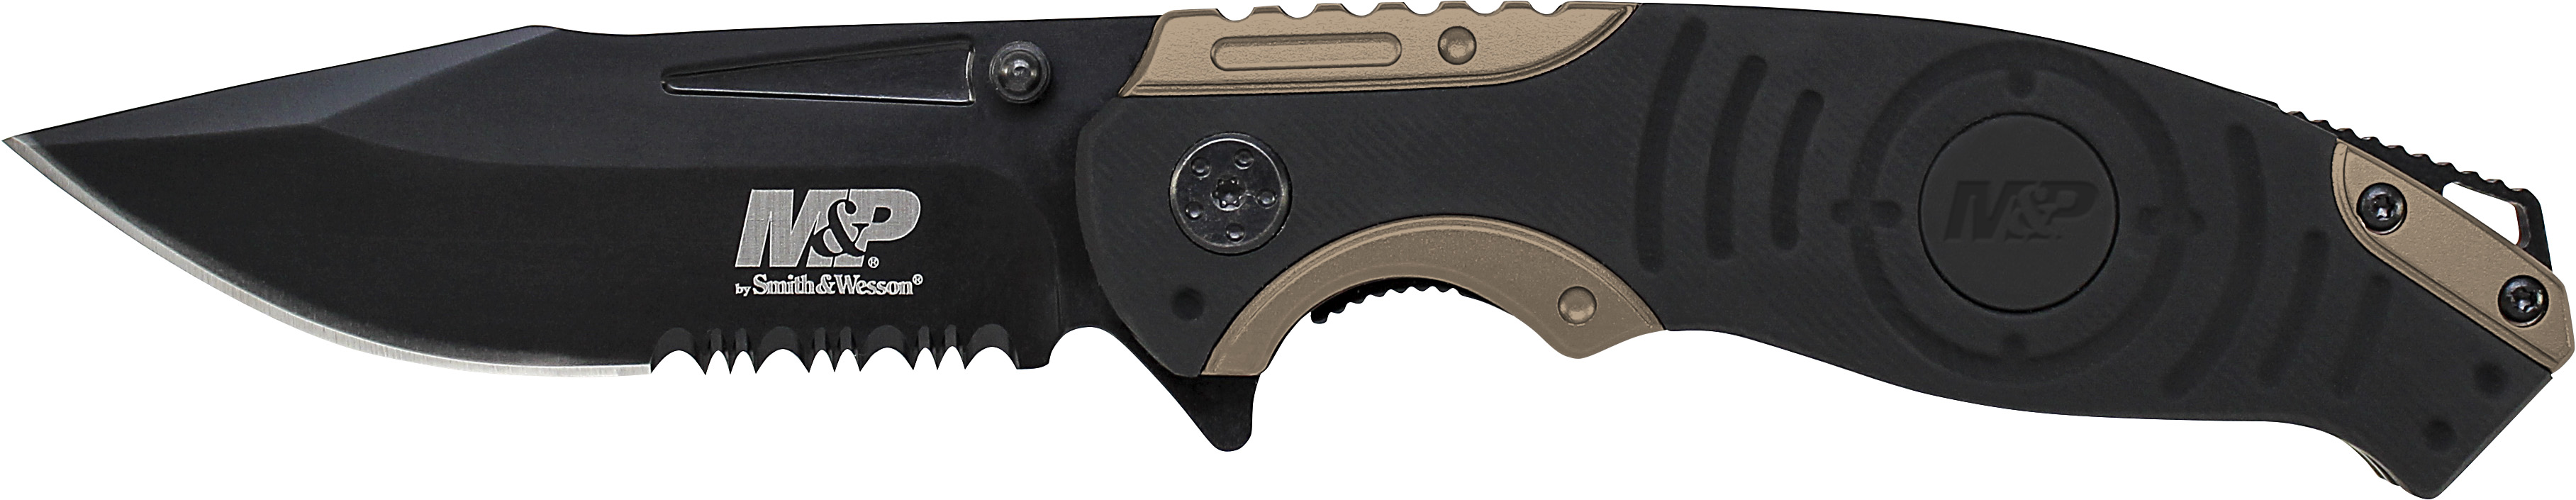 SWMP13BS - Smith & Wesson Liner Lock, 8Cr13MoV Drop Point Blade, Thumb Knobs, Index Flipper, Black/Gold Handle